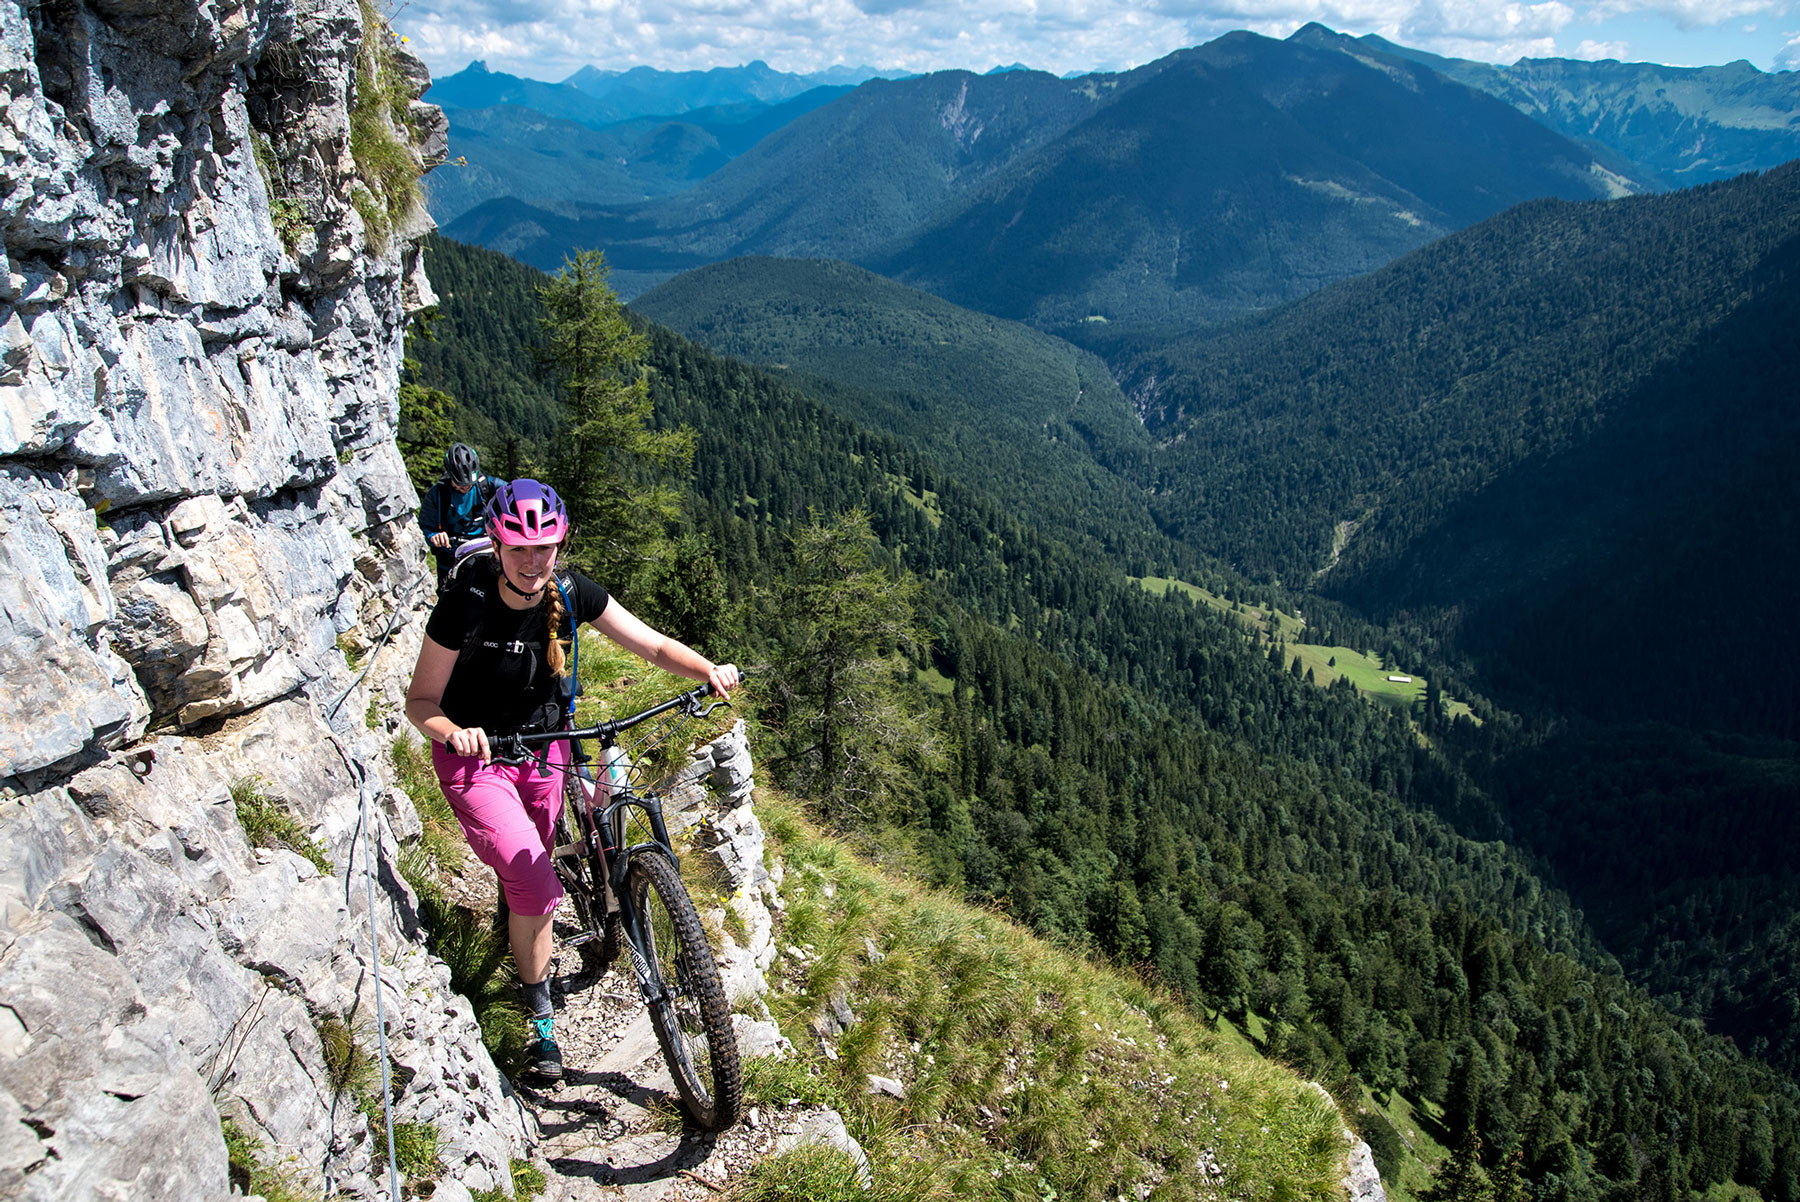 lisa-amenda-munichmountaingirls-Mountainbiken-mtb-foto-Tassilo-Pritzl